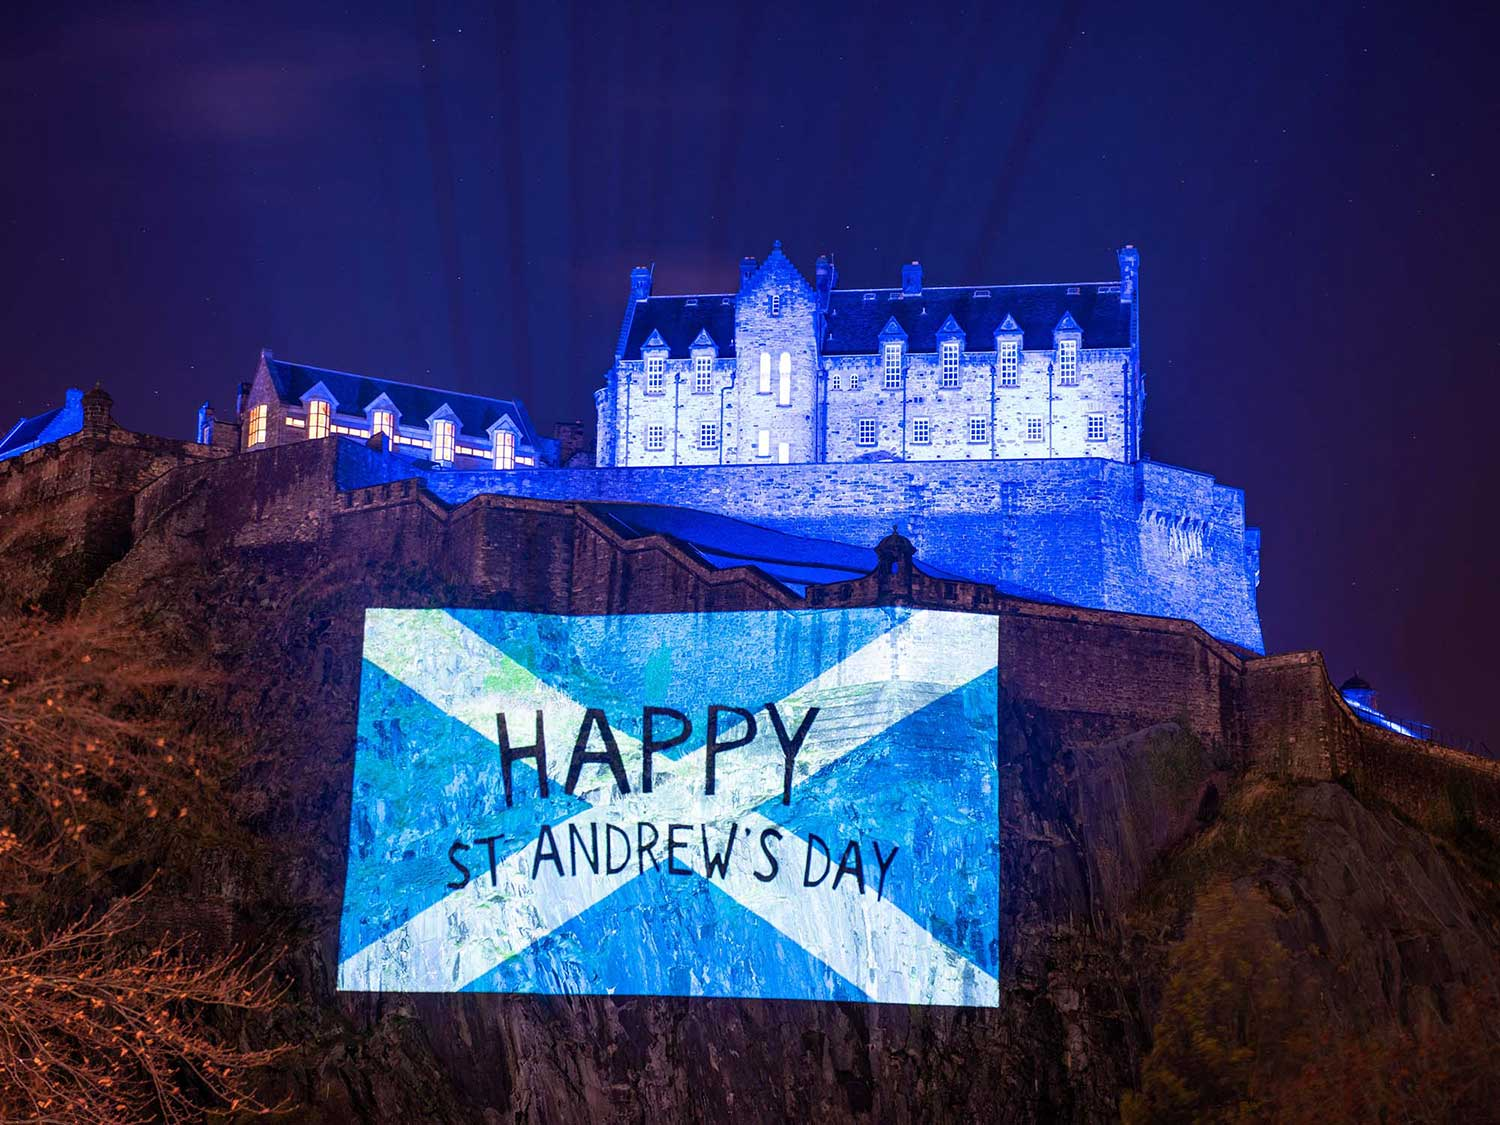 Scottish Governmemt Timelapse Guerrilla Projections film, for st andrews day